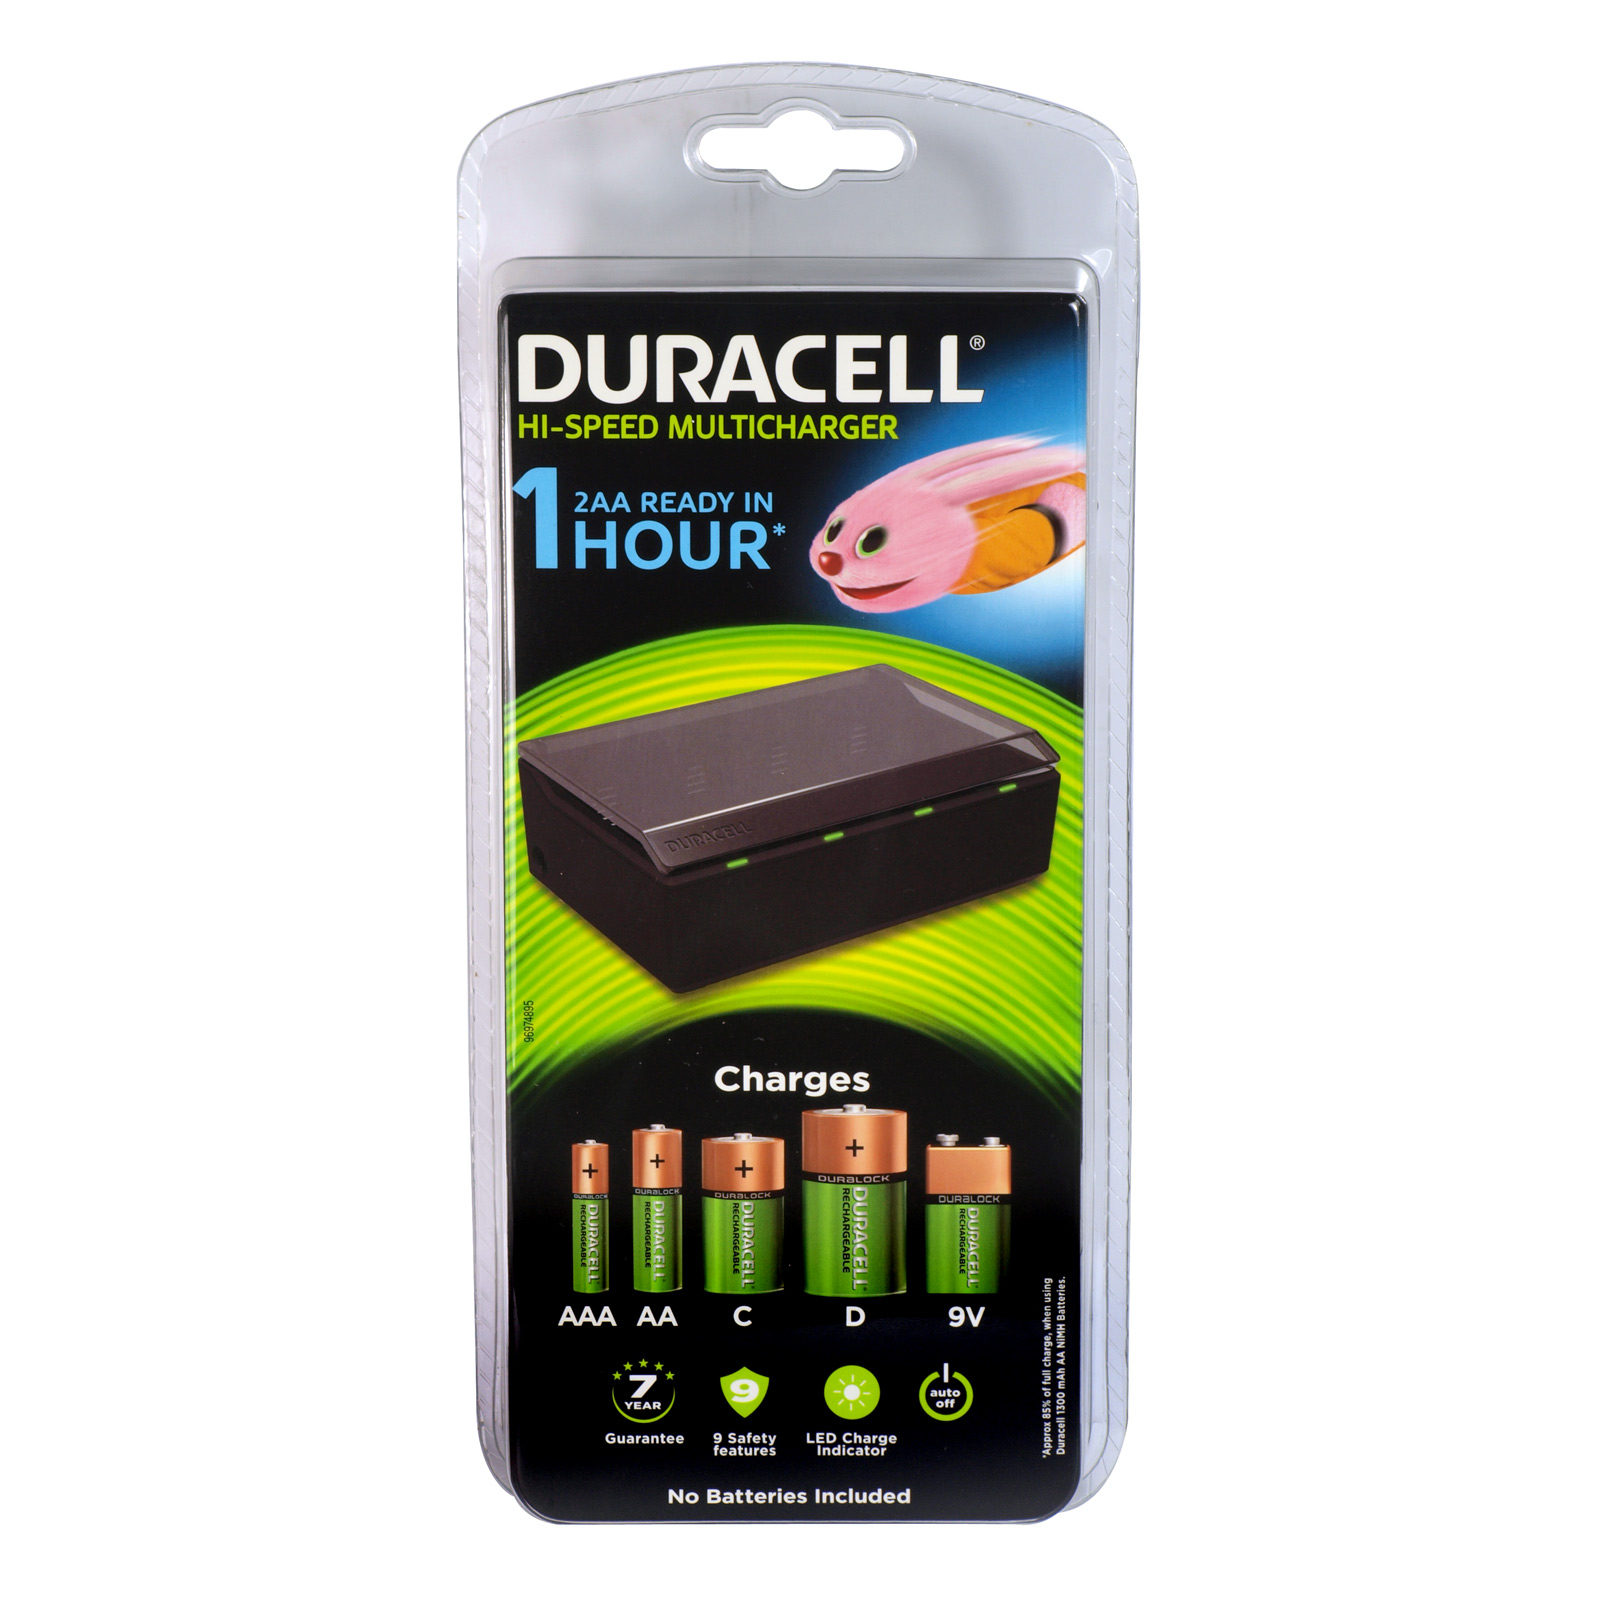 DURACELL HI-SPEED MULTI BATTERY CHARGER CHARGES AAA/AA/C/D/9V